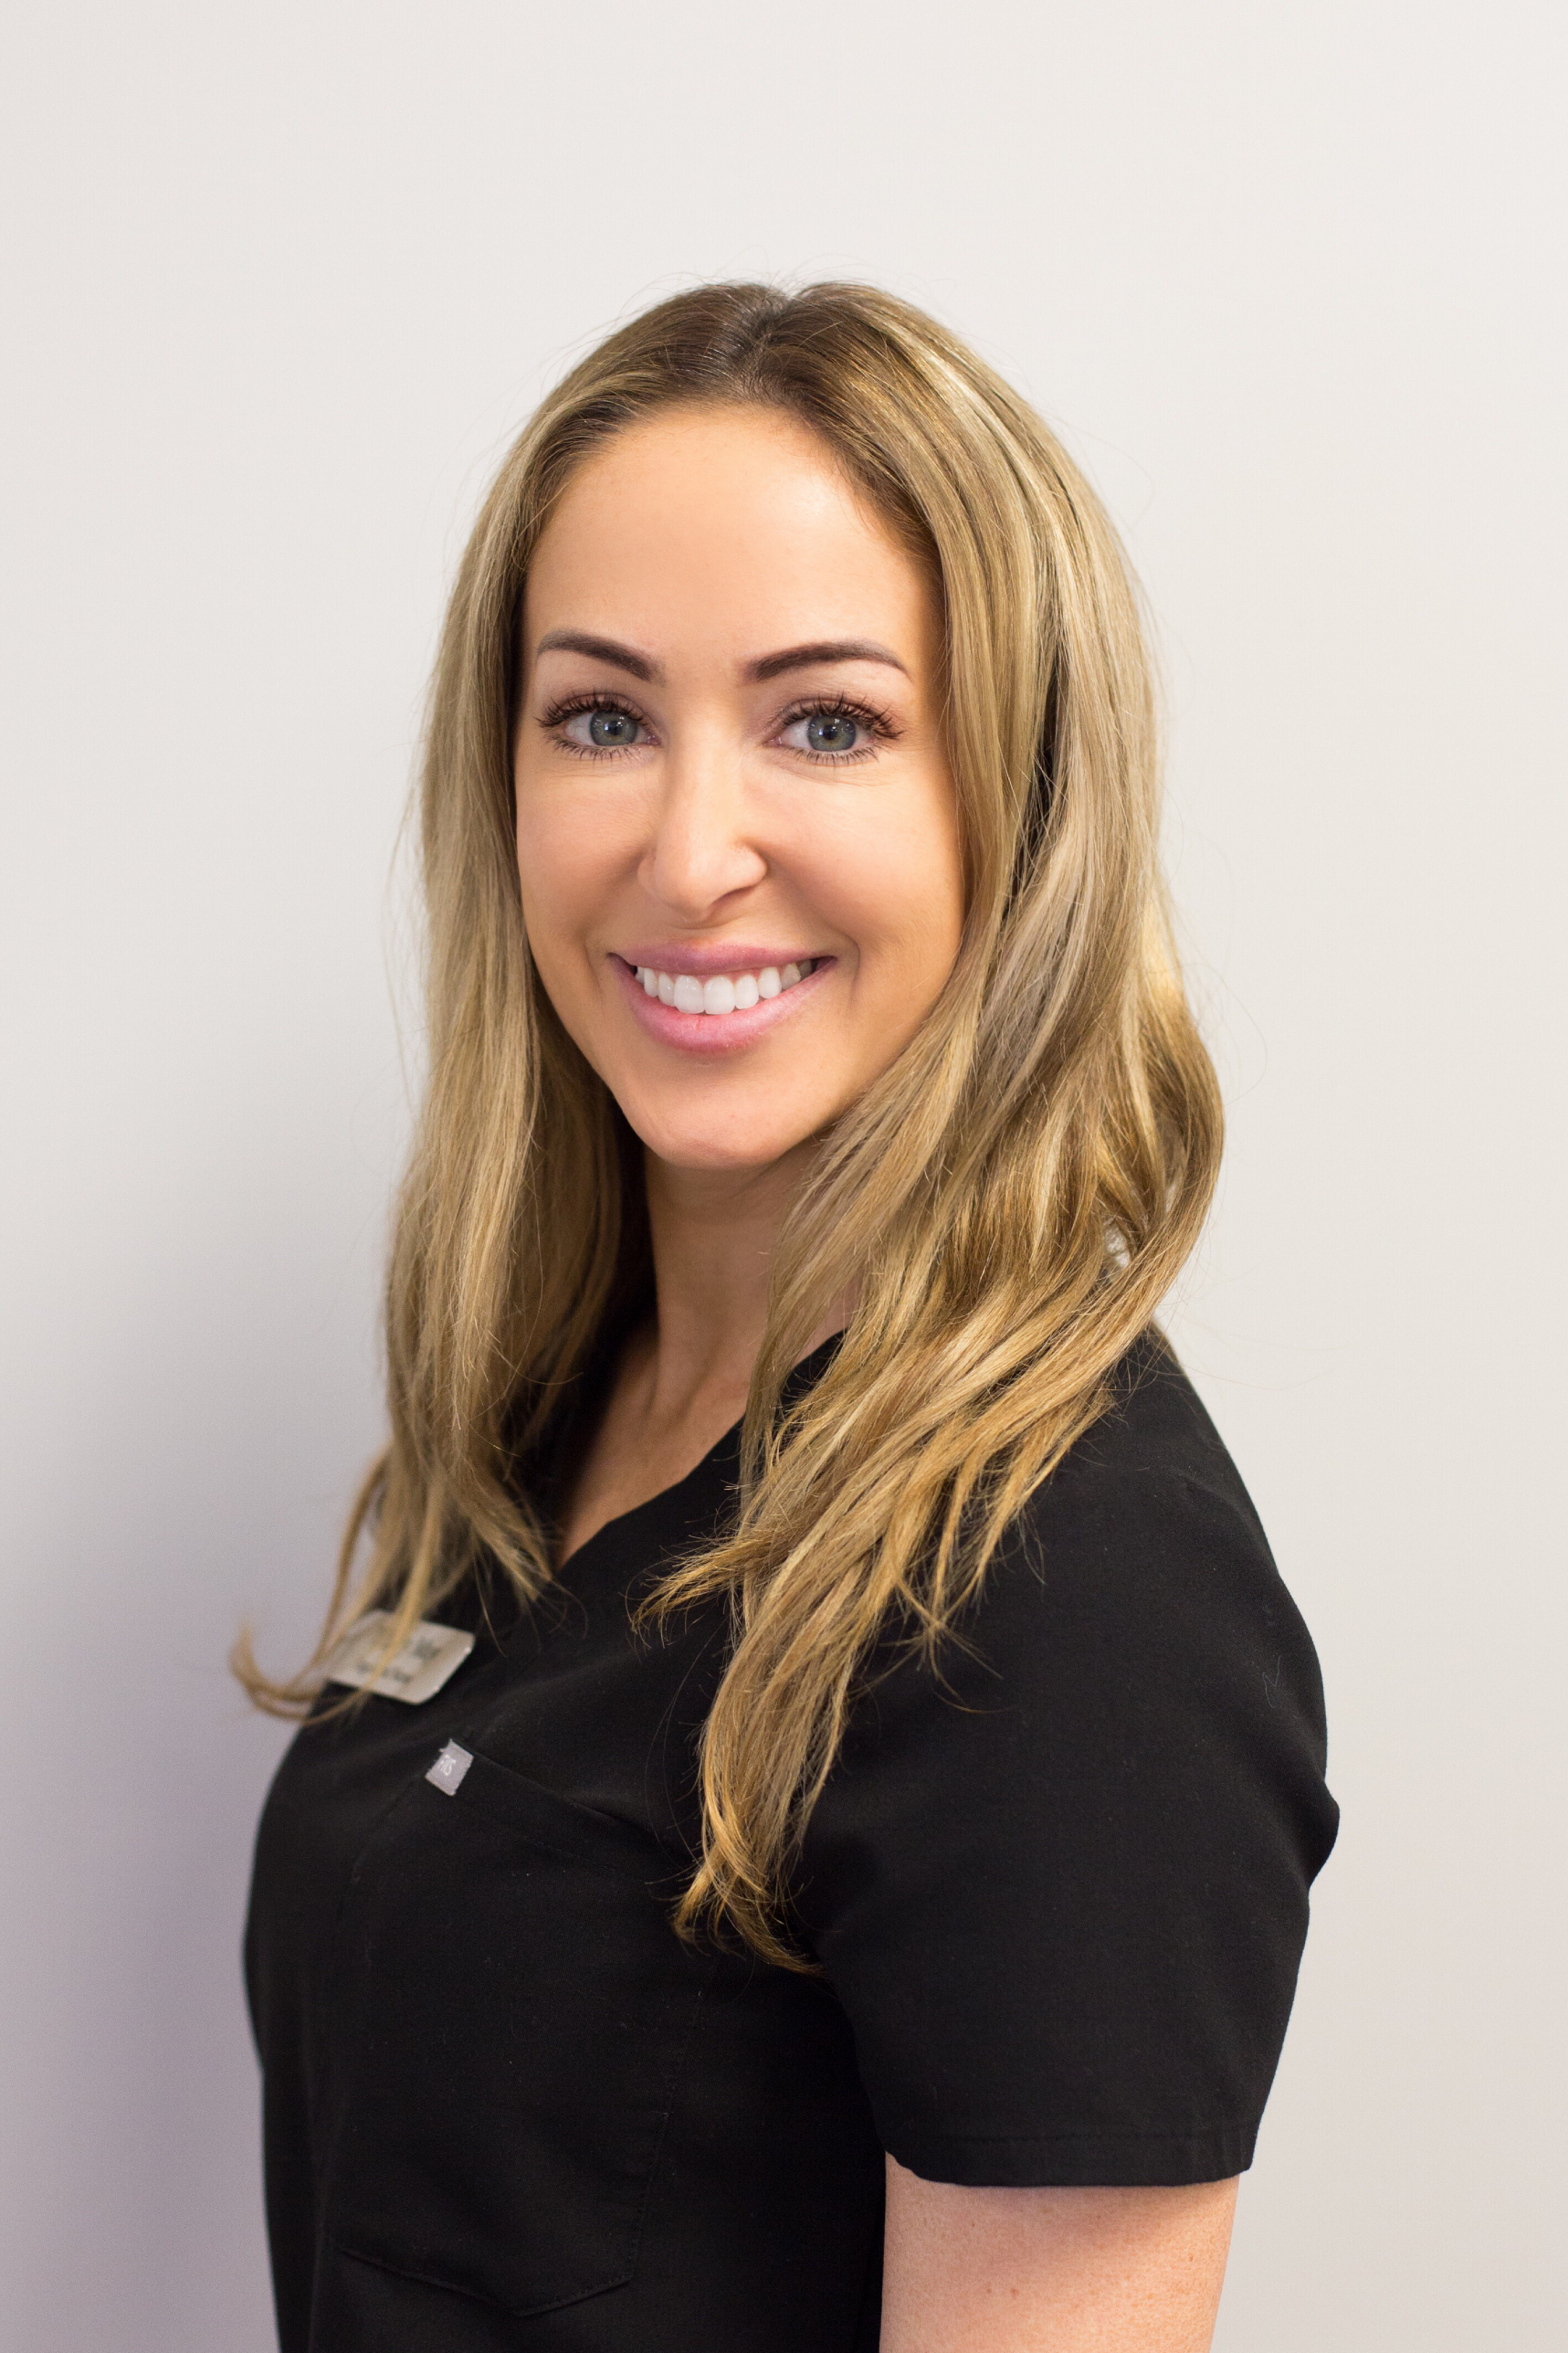 Tiffany May   Tiffany is a is a Registered Nurse who assists in all aspects of surgery. Tiffany's compassion makes her an ideal recovery room nurse. She will help make your plastic surgery experience a positive one.